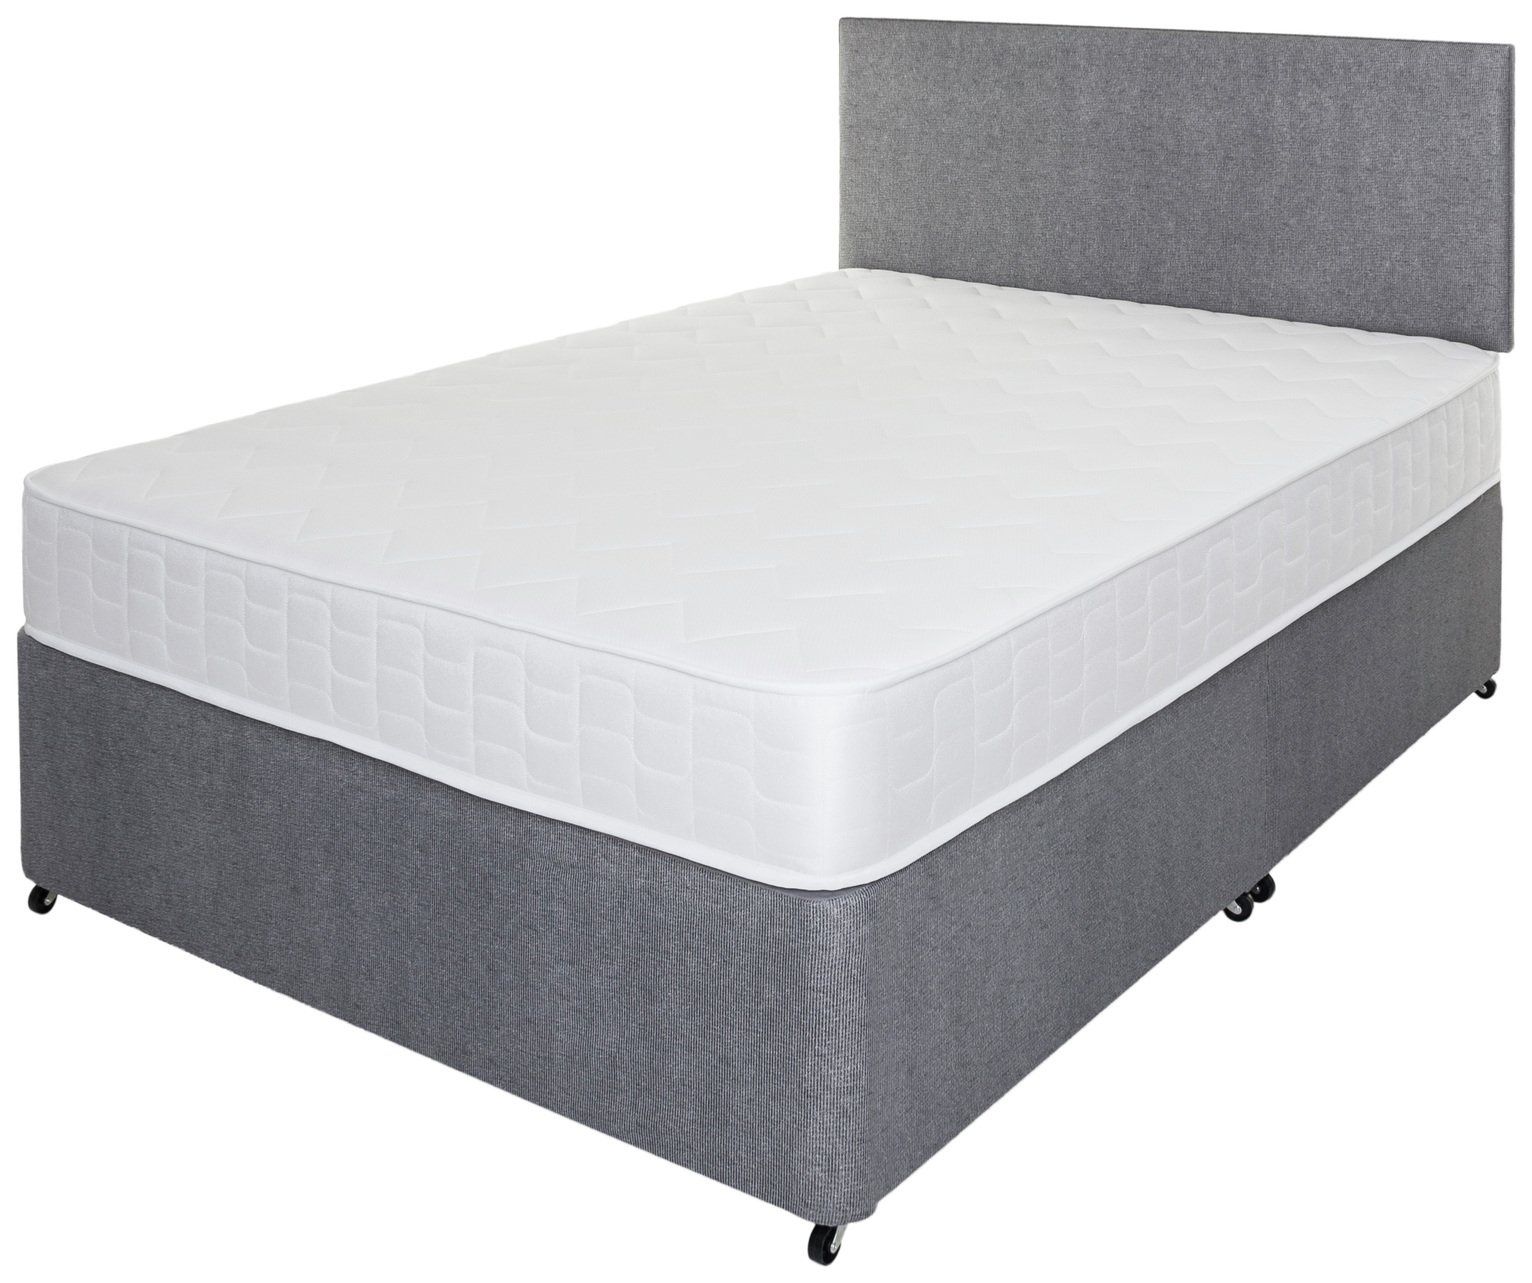 Airsprung elmdon memory small double divan grey fanzfirst for Small double divan bed sale